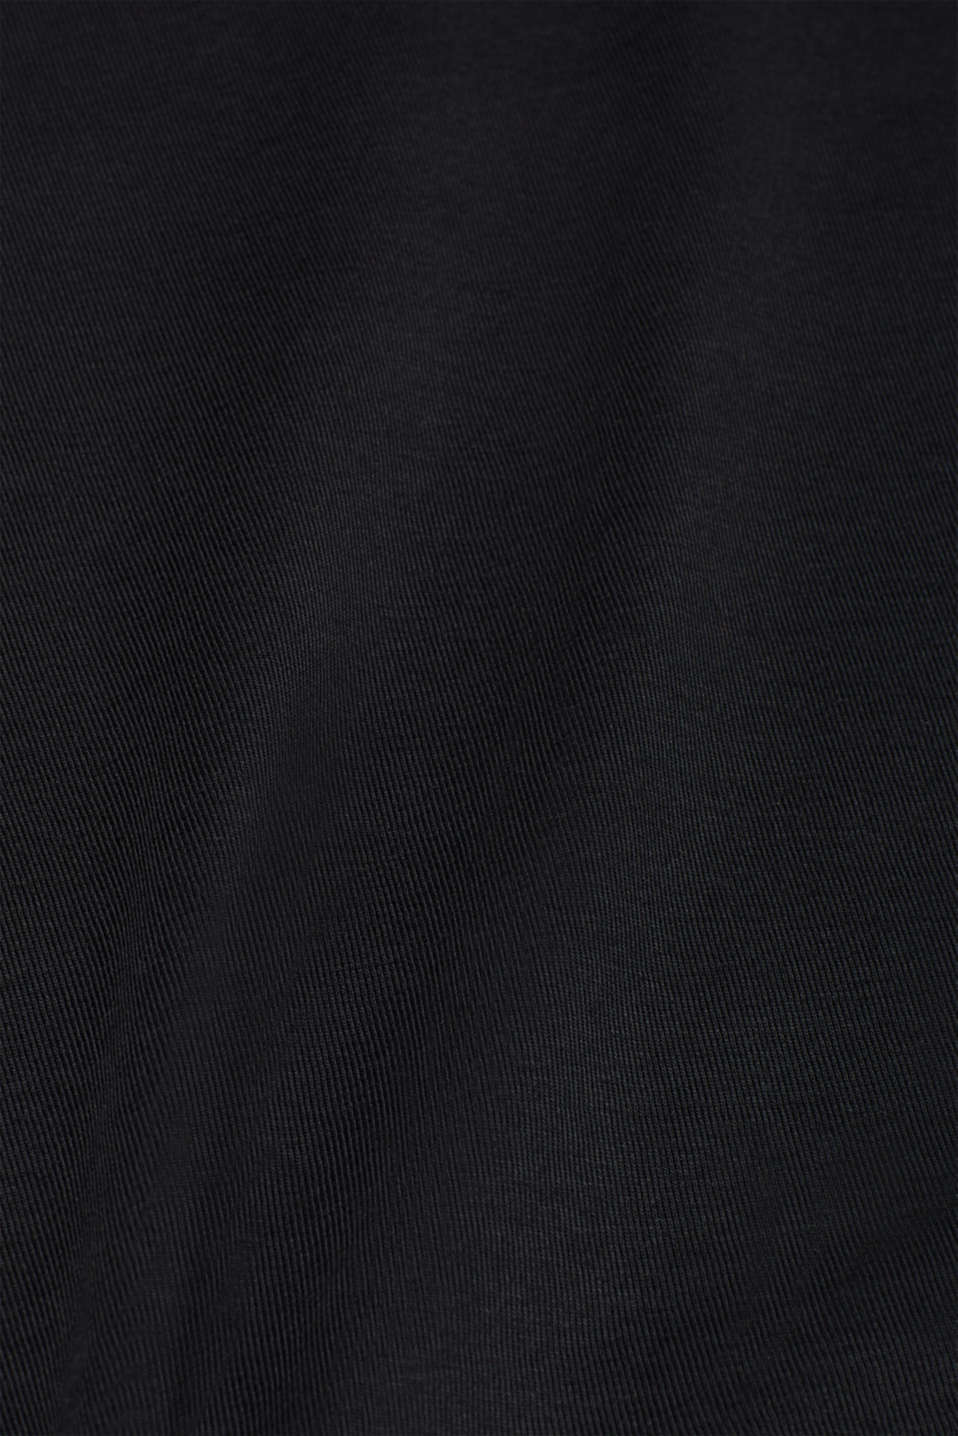 T-Shirts, BLACK, detail image number 5